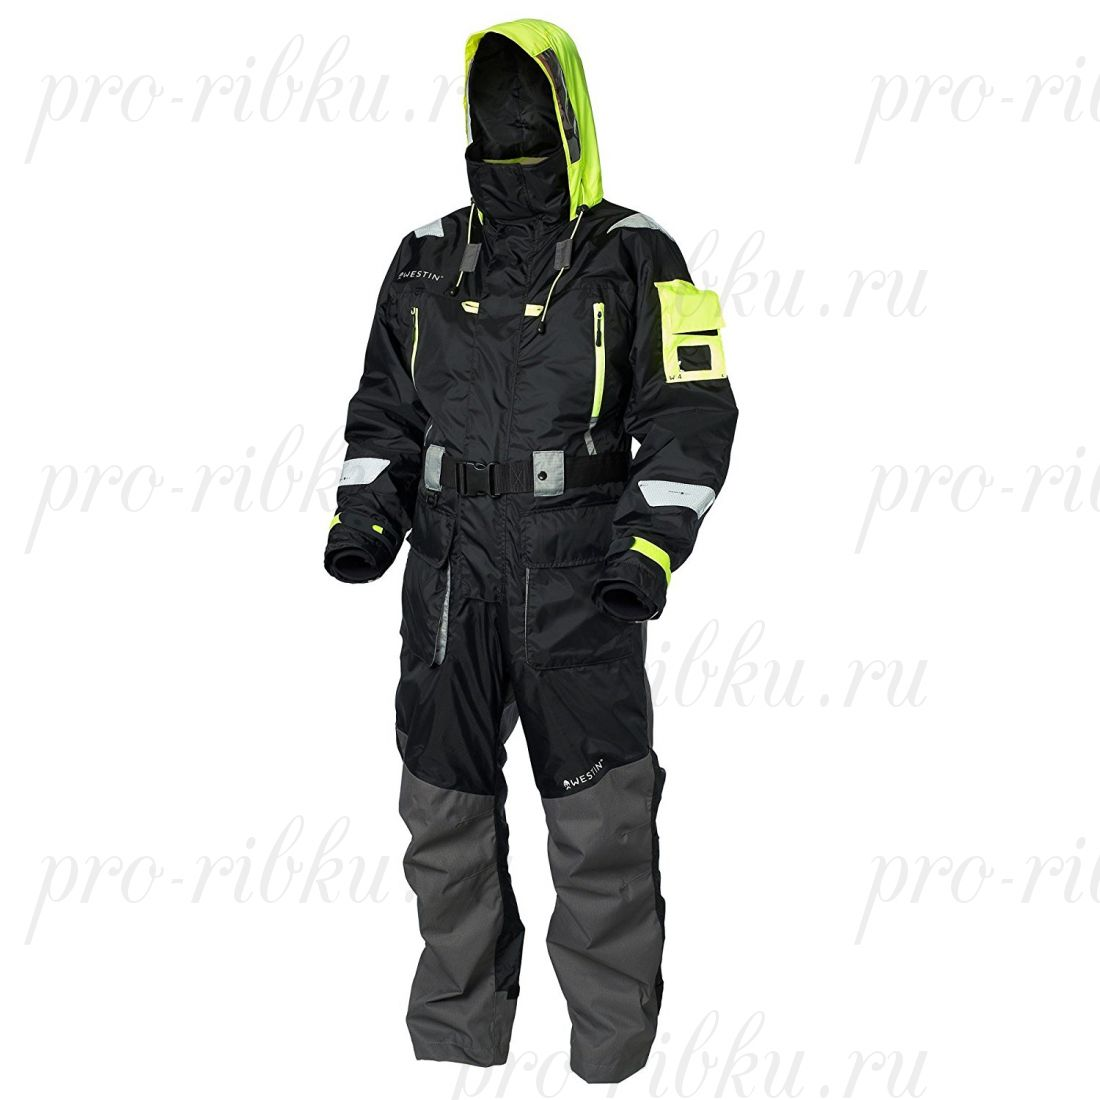 Костюм Westin W4 Flotation Suit Jetset Lime размер L